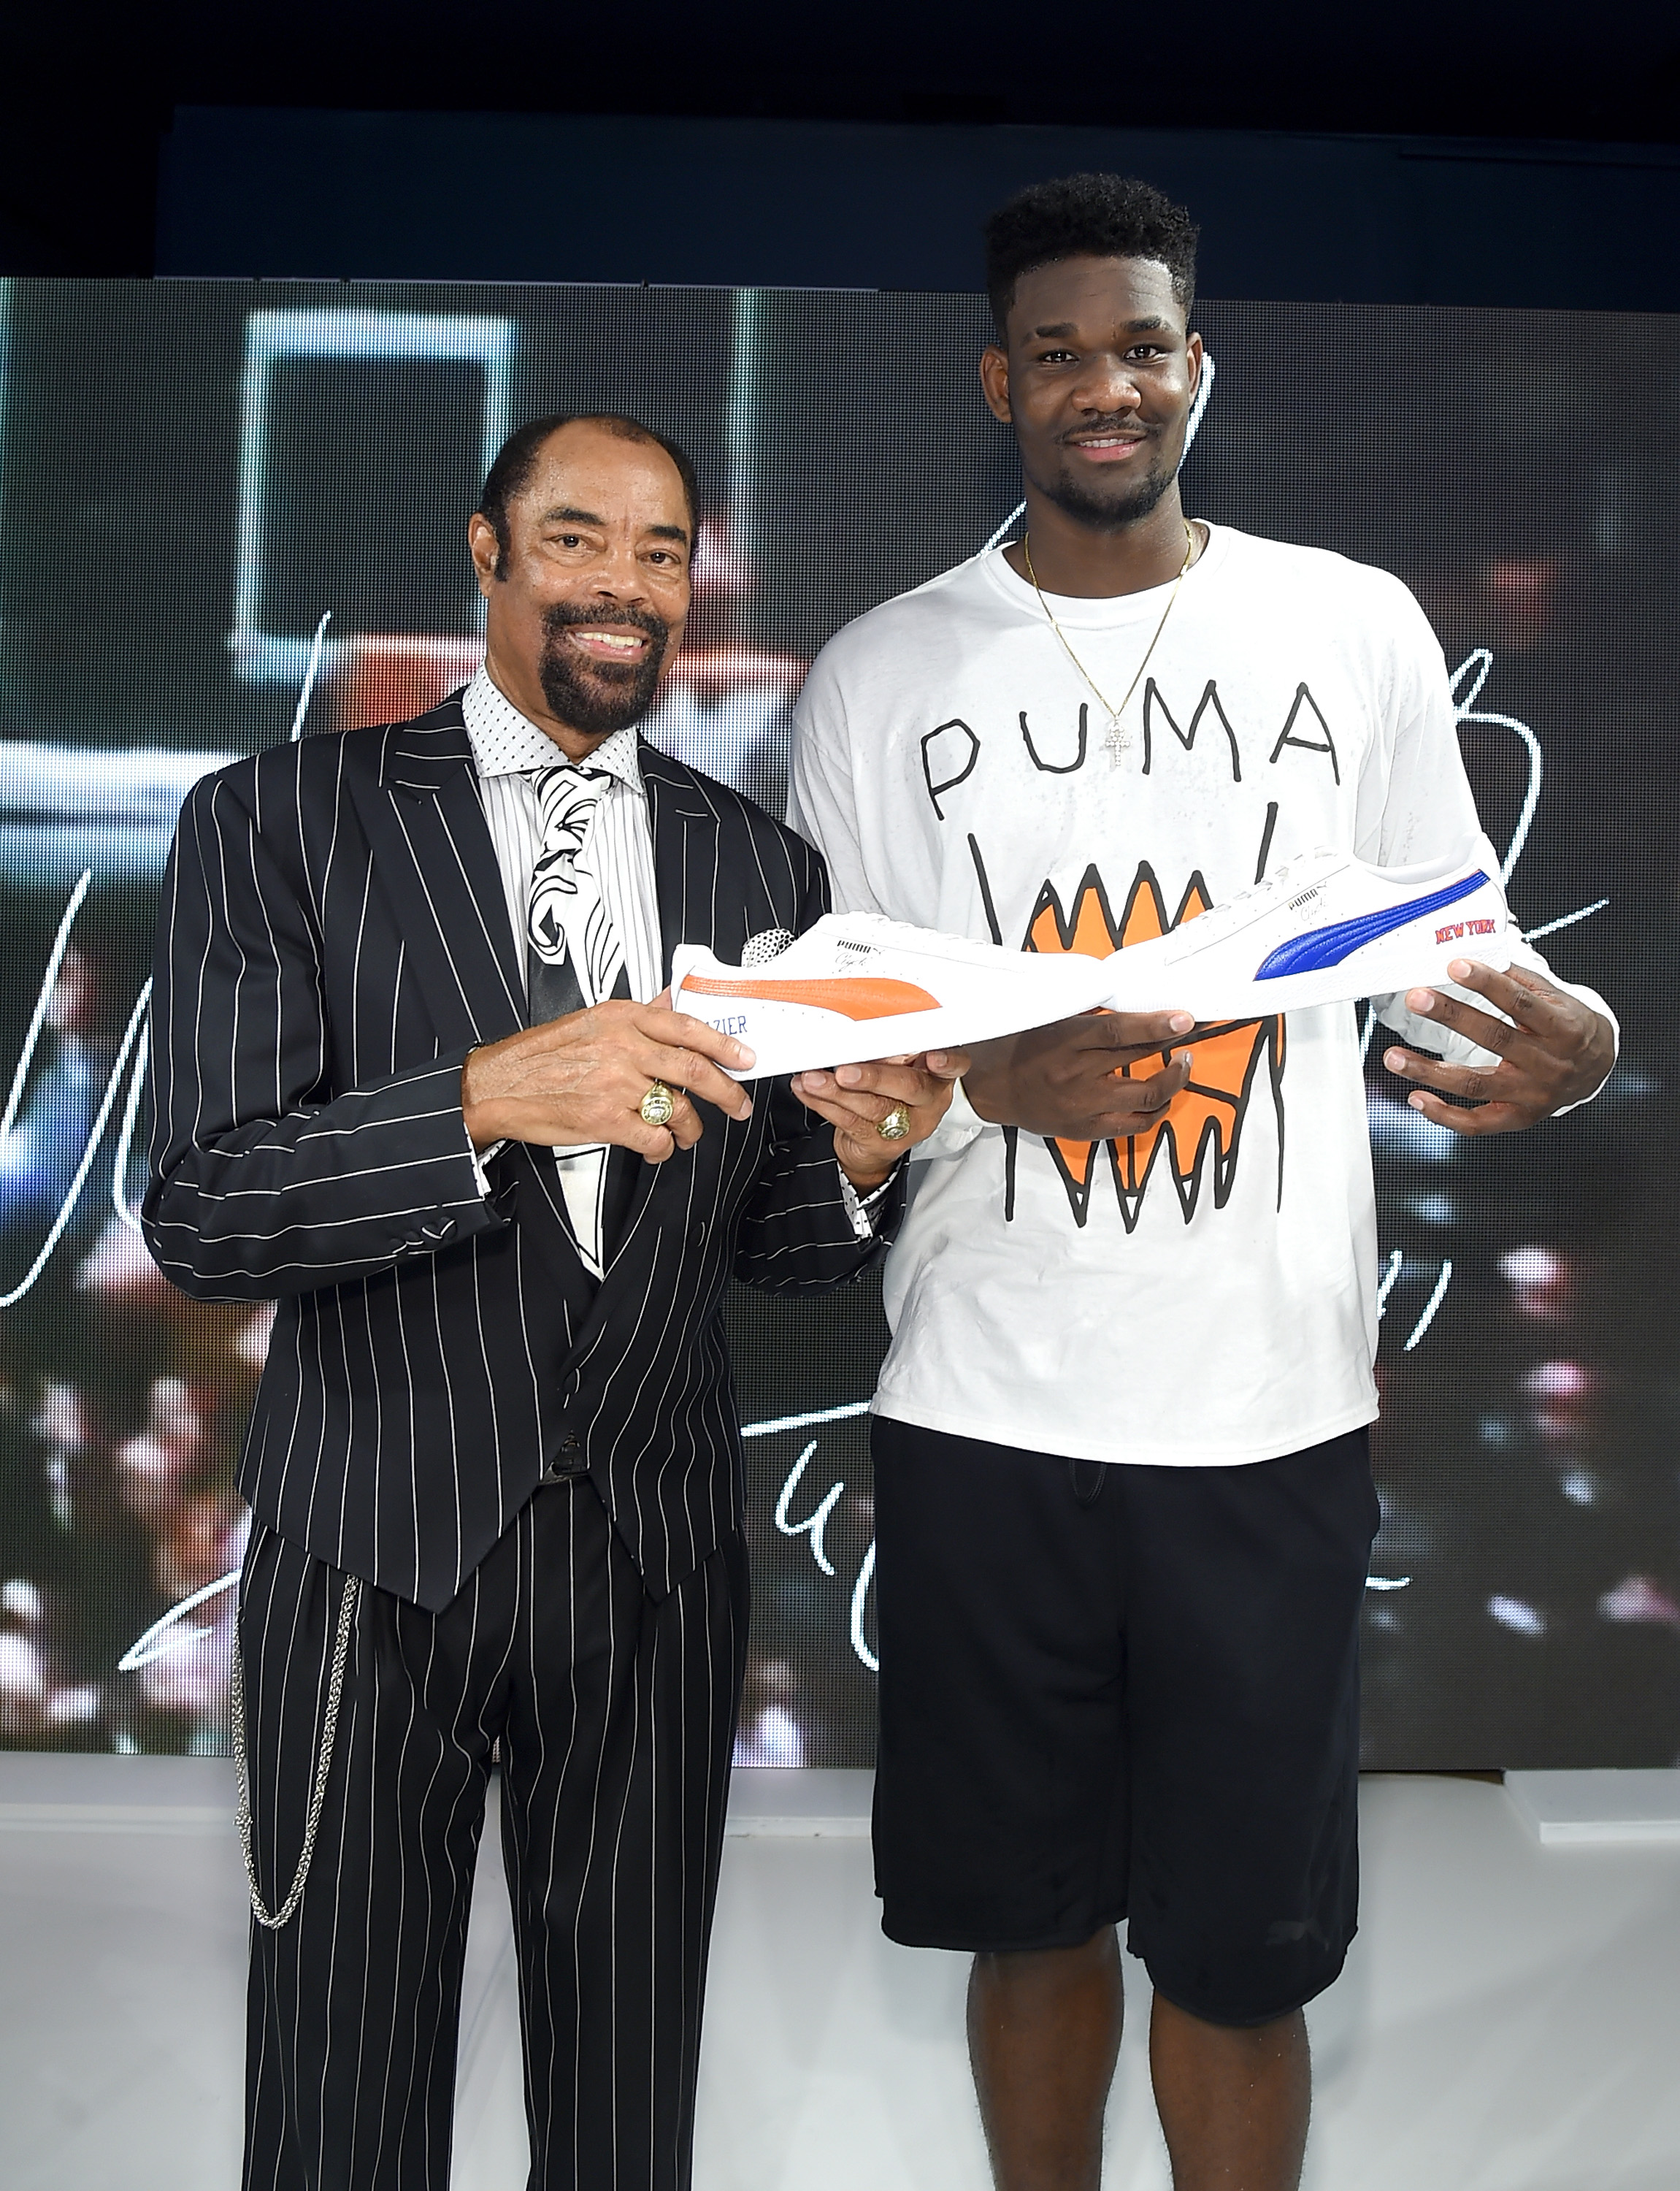 PUMA Signs First Ever Life Long Contract With Basketball Legend Walt 'Clyde' Frazier